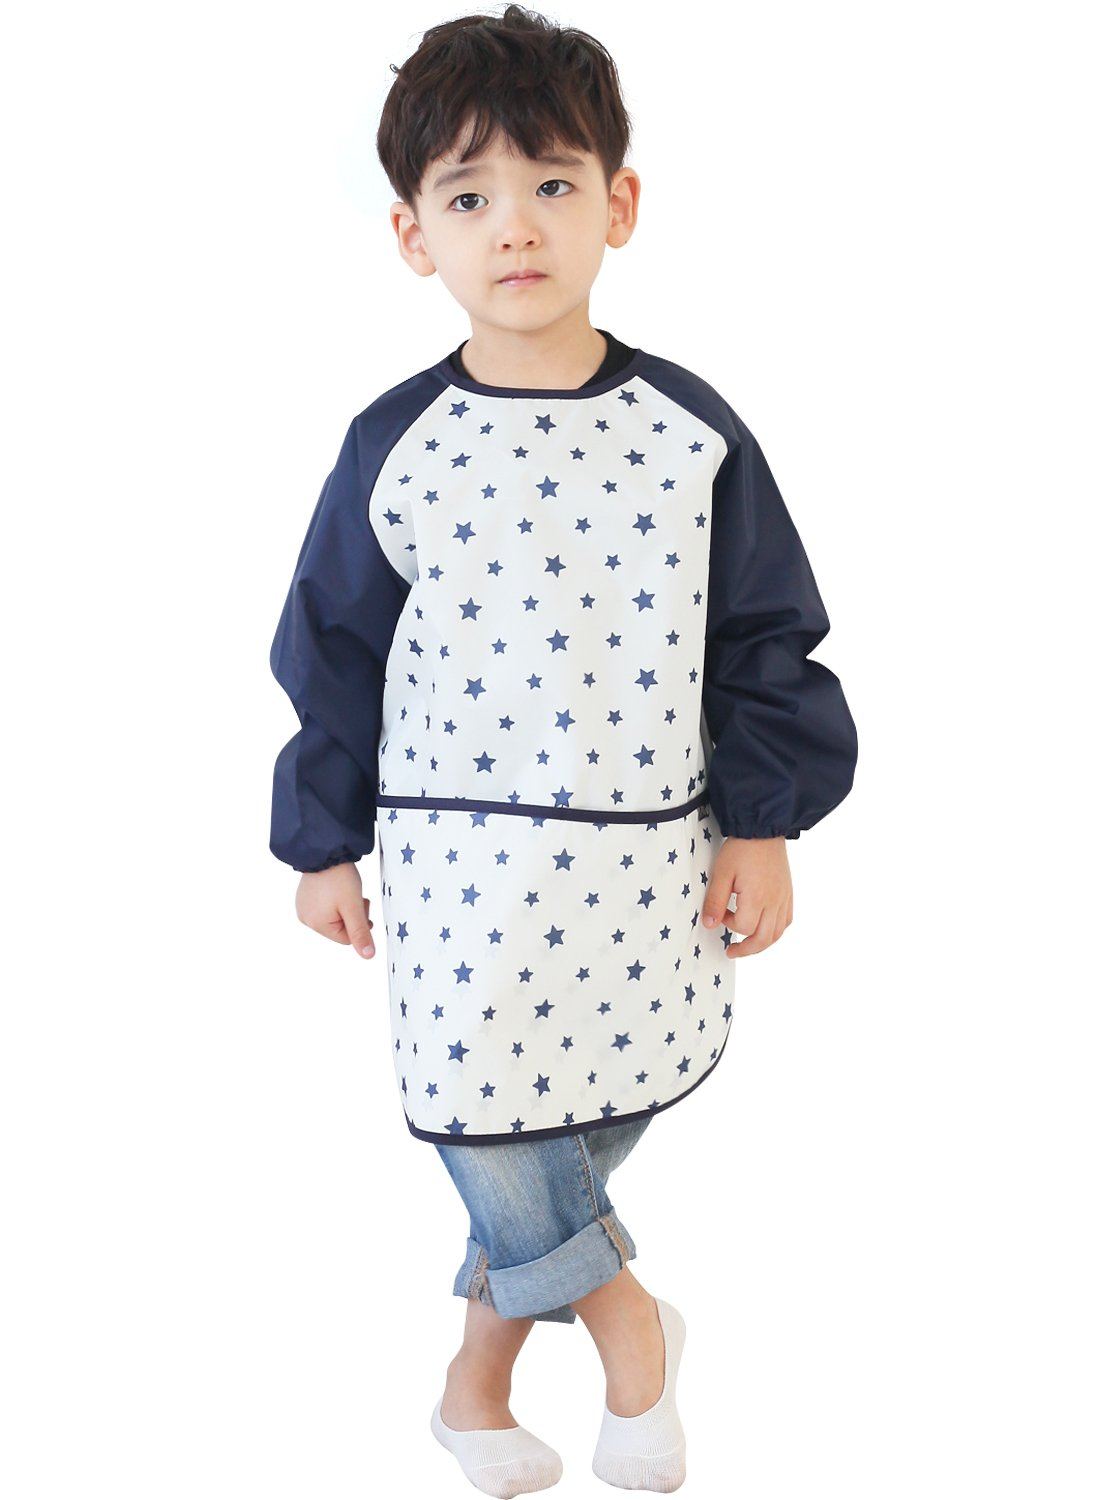 Plie Kids Art Smocks, Children Waterproof Artist Painting Aprons Long Sleeve with Pockets, Pink Animal (04-S) GIN01-04-S